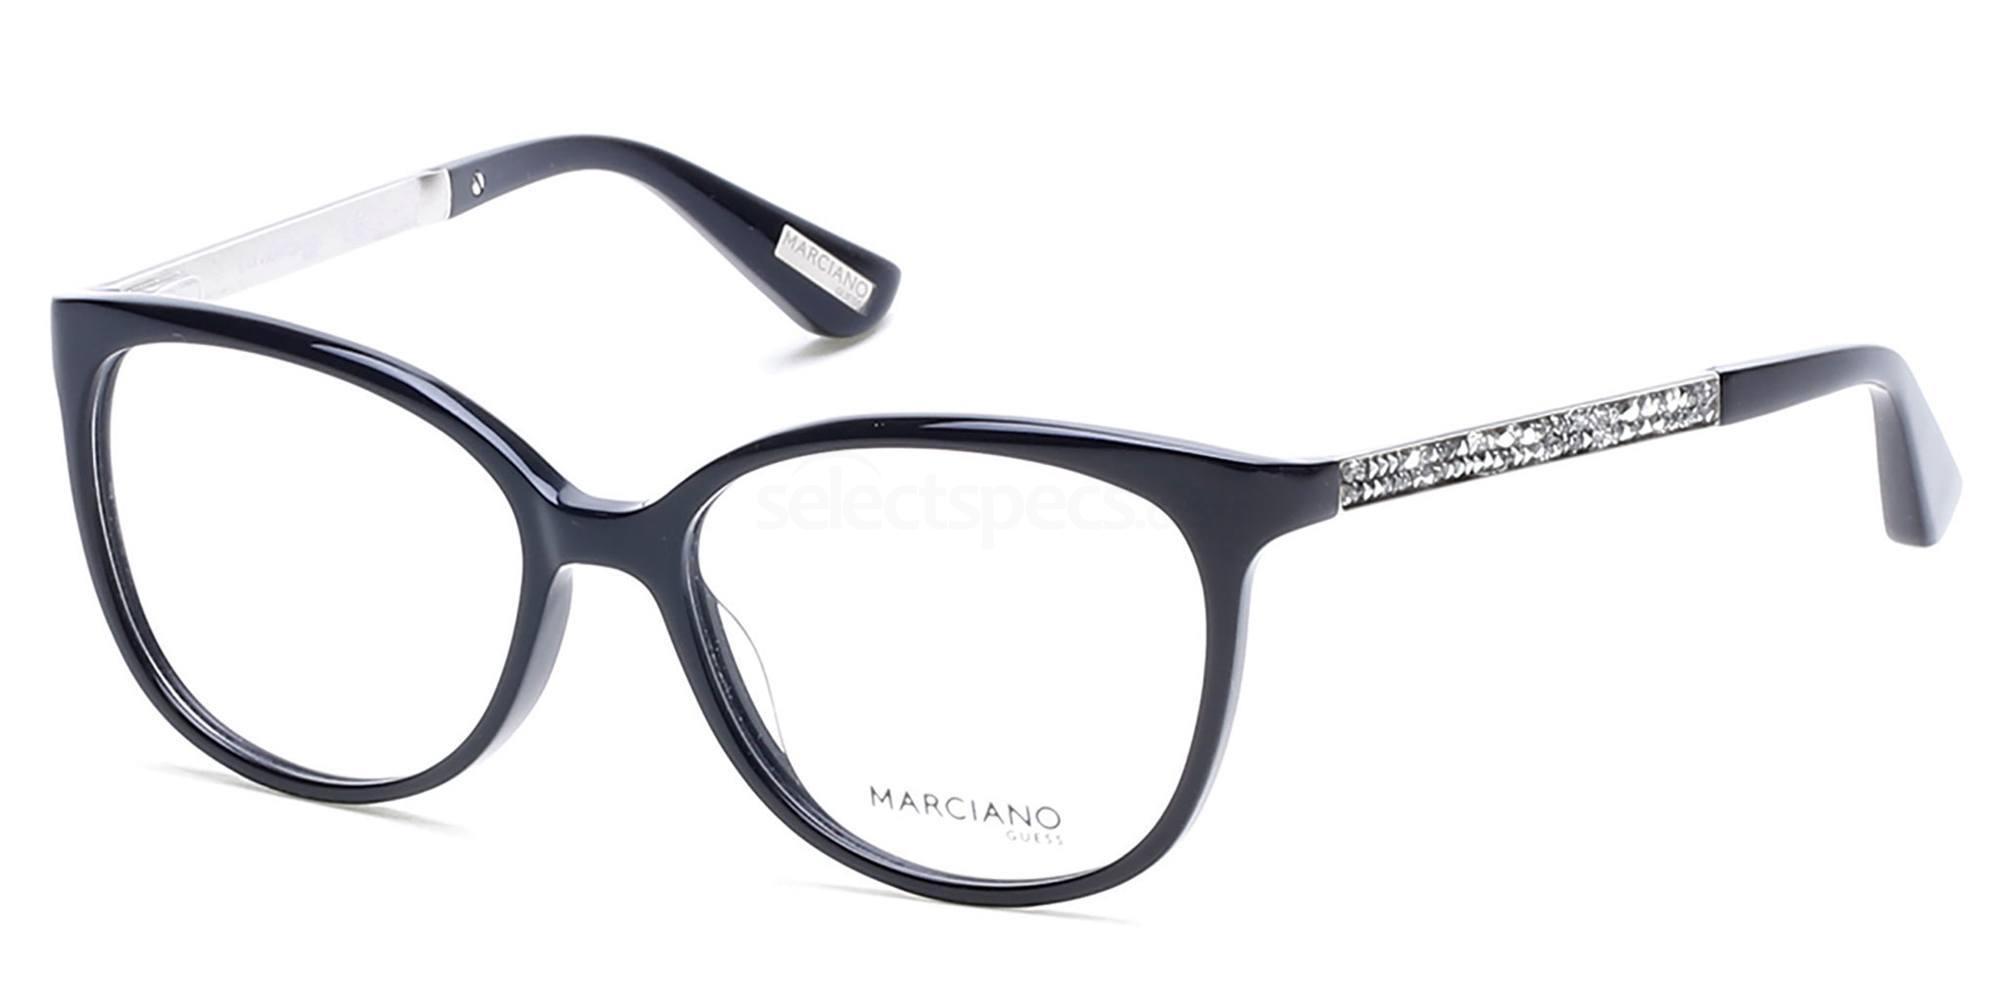 001 GM0282 Glasses, Guess by Marciano